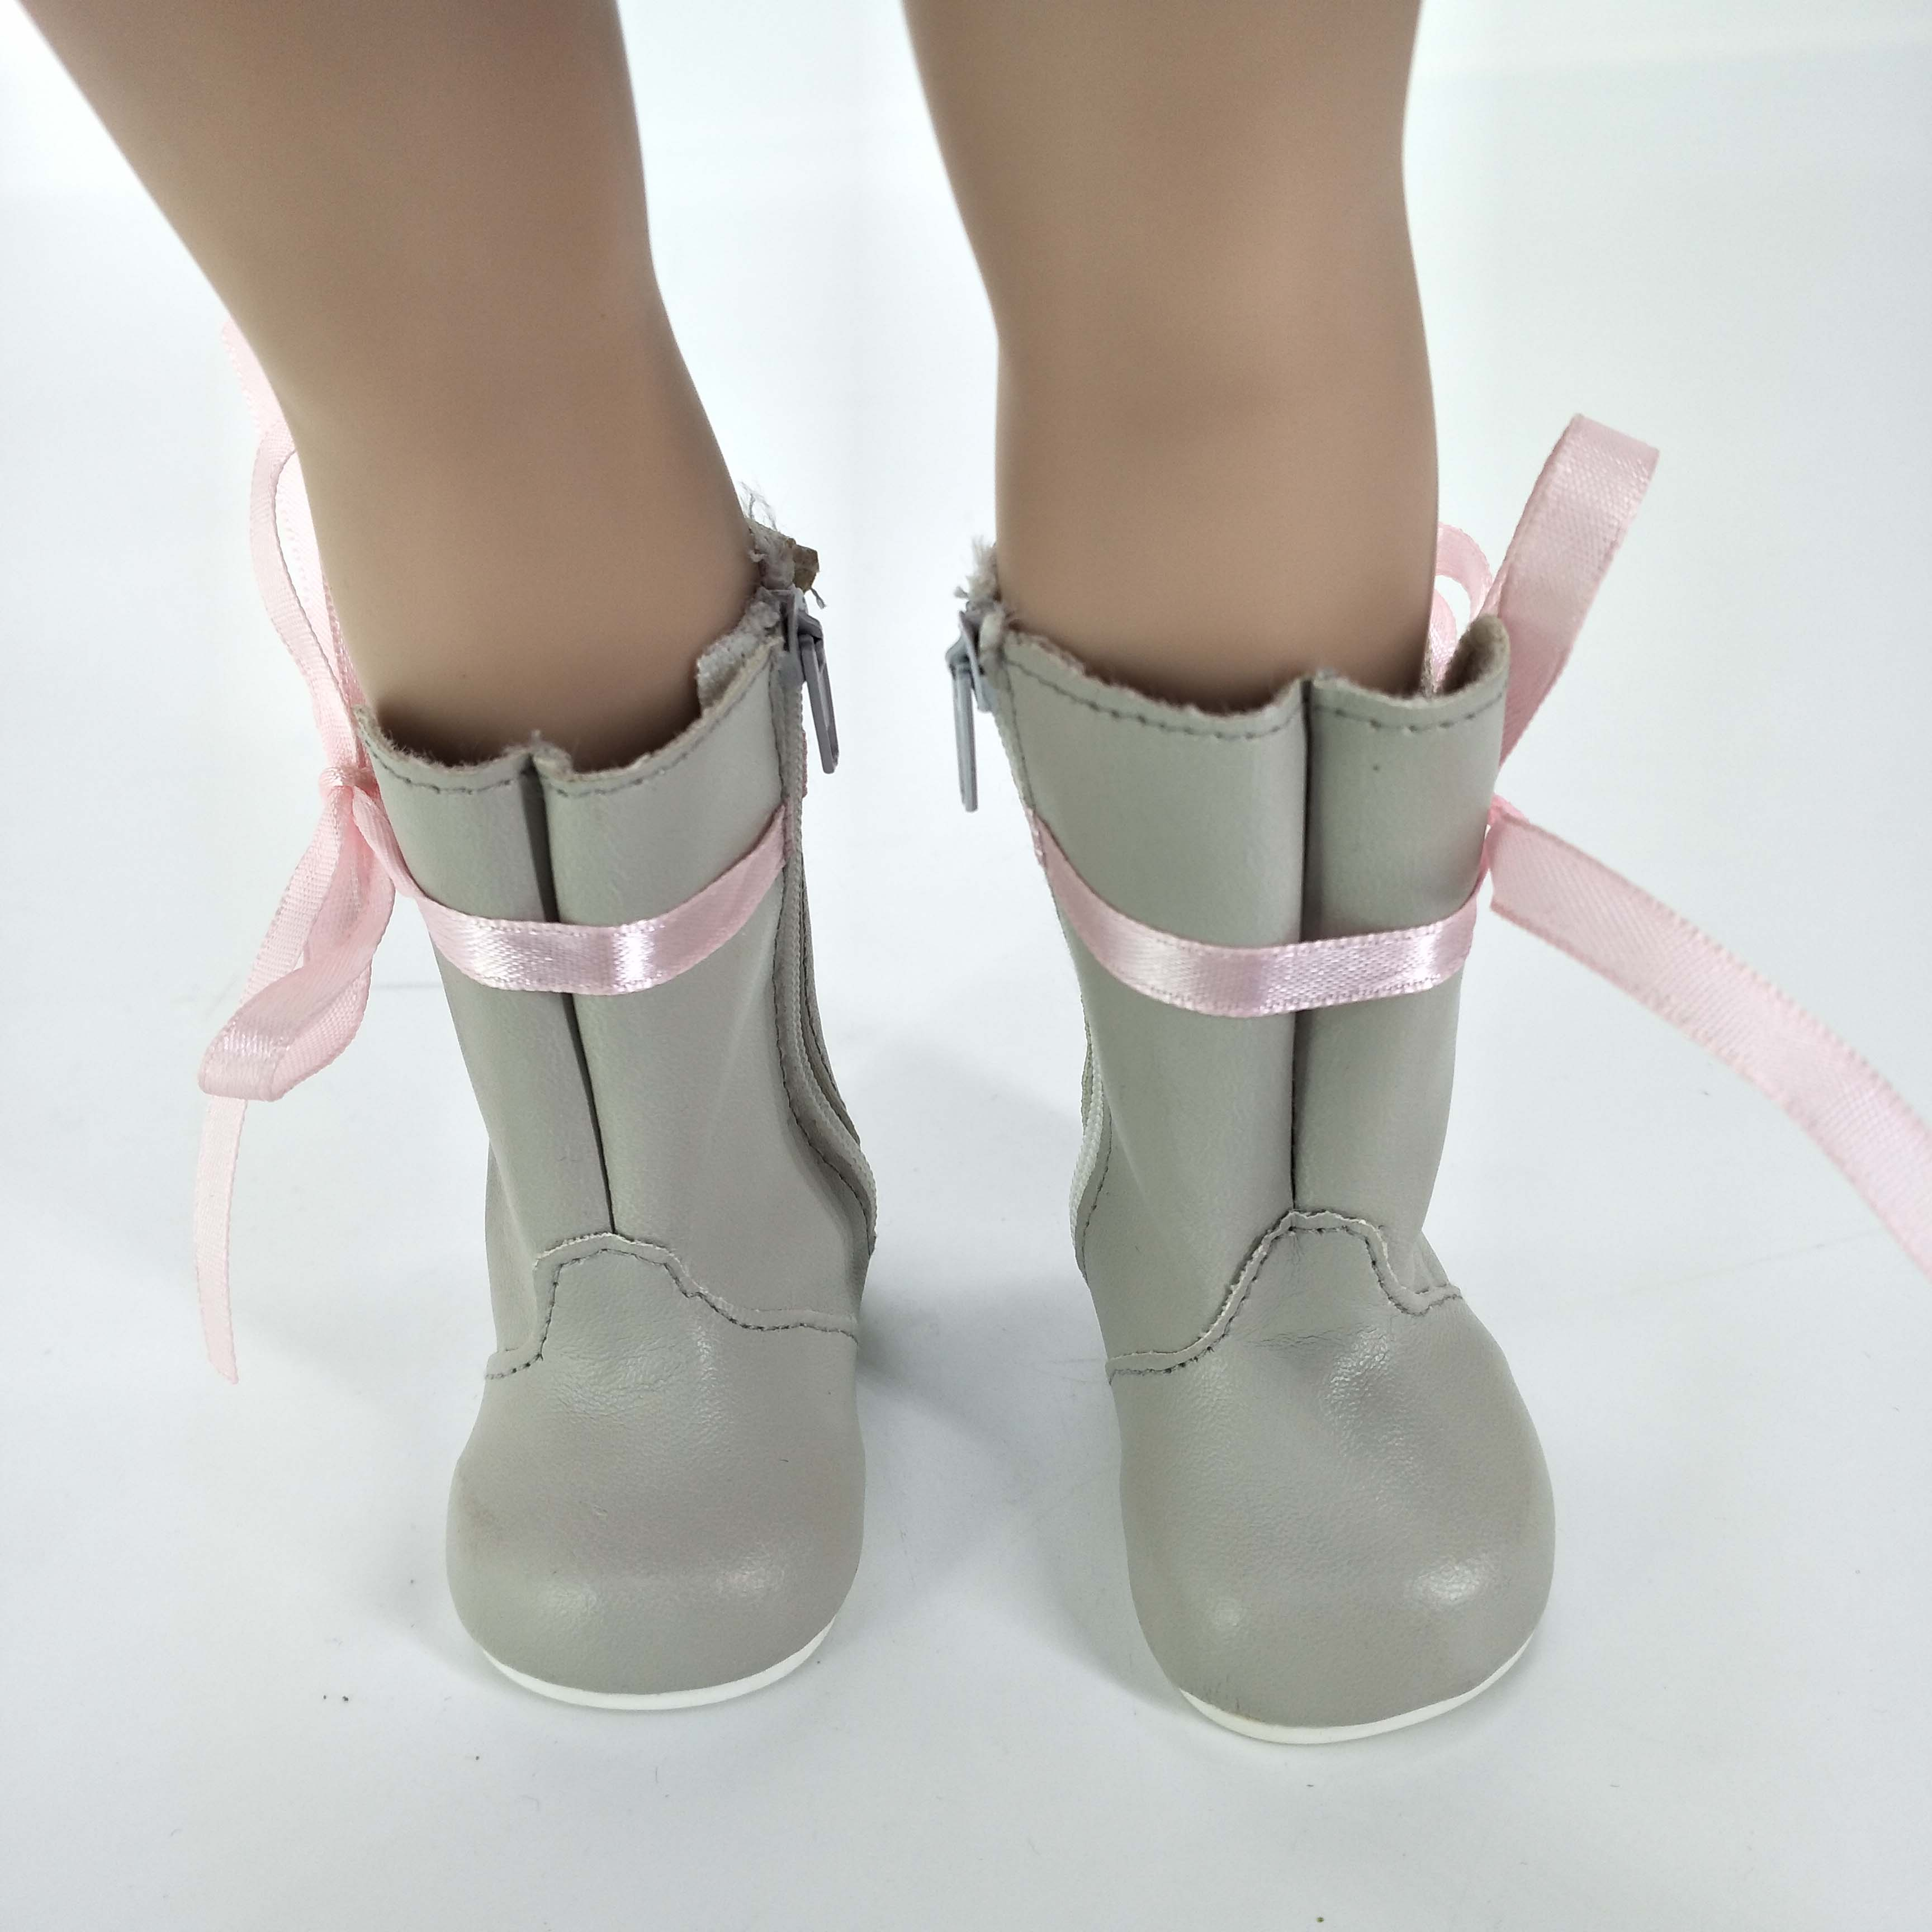 18inch doll shoes